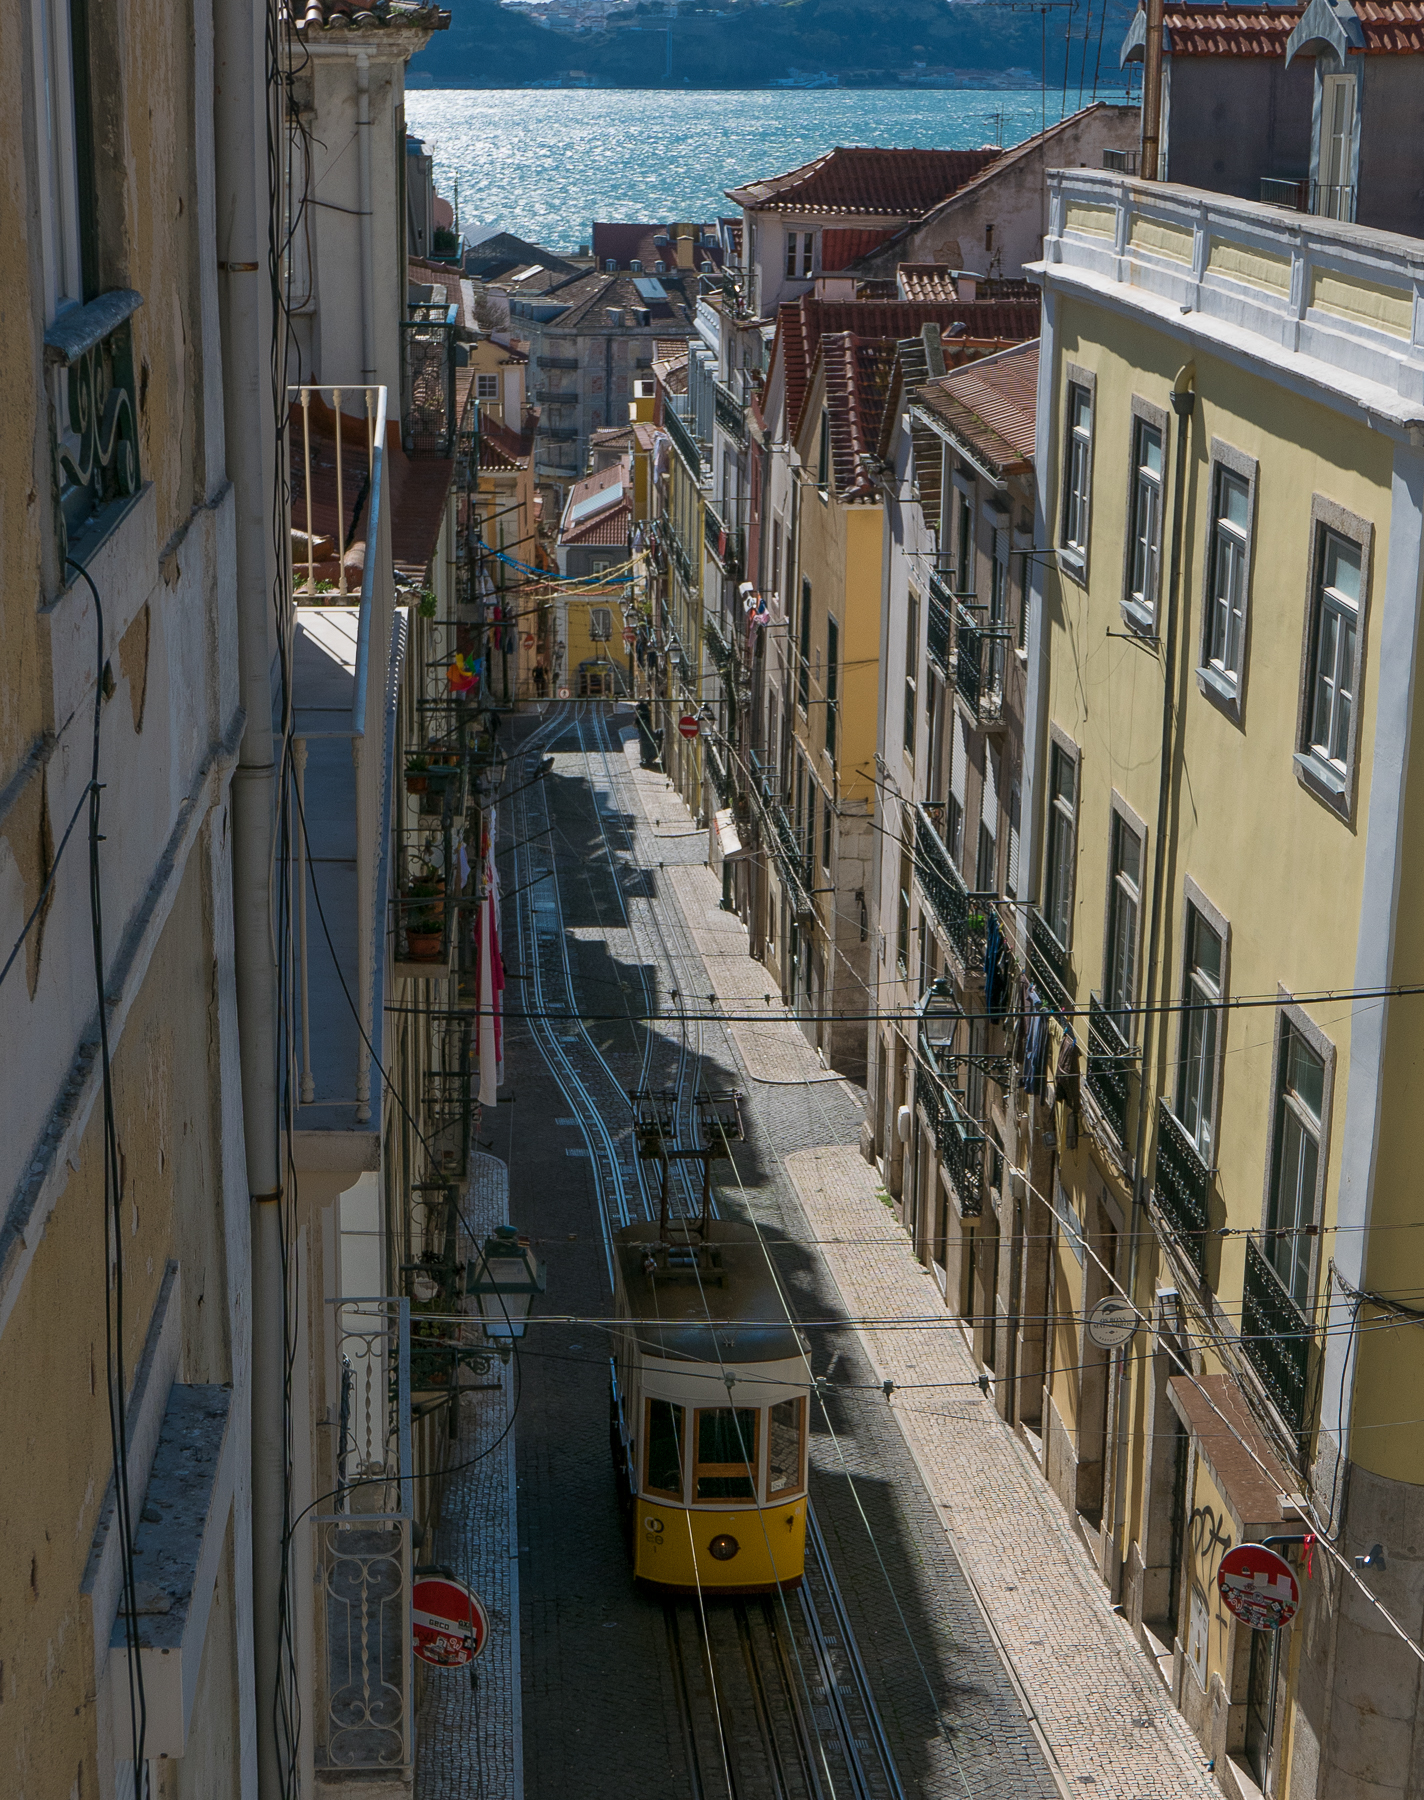 Photo workshops in Lisbon and the Algarve- tram in Lisbon, in Bica street, the sea in the distance.